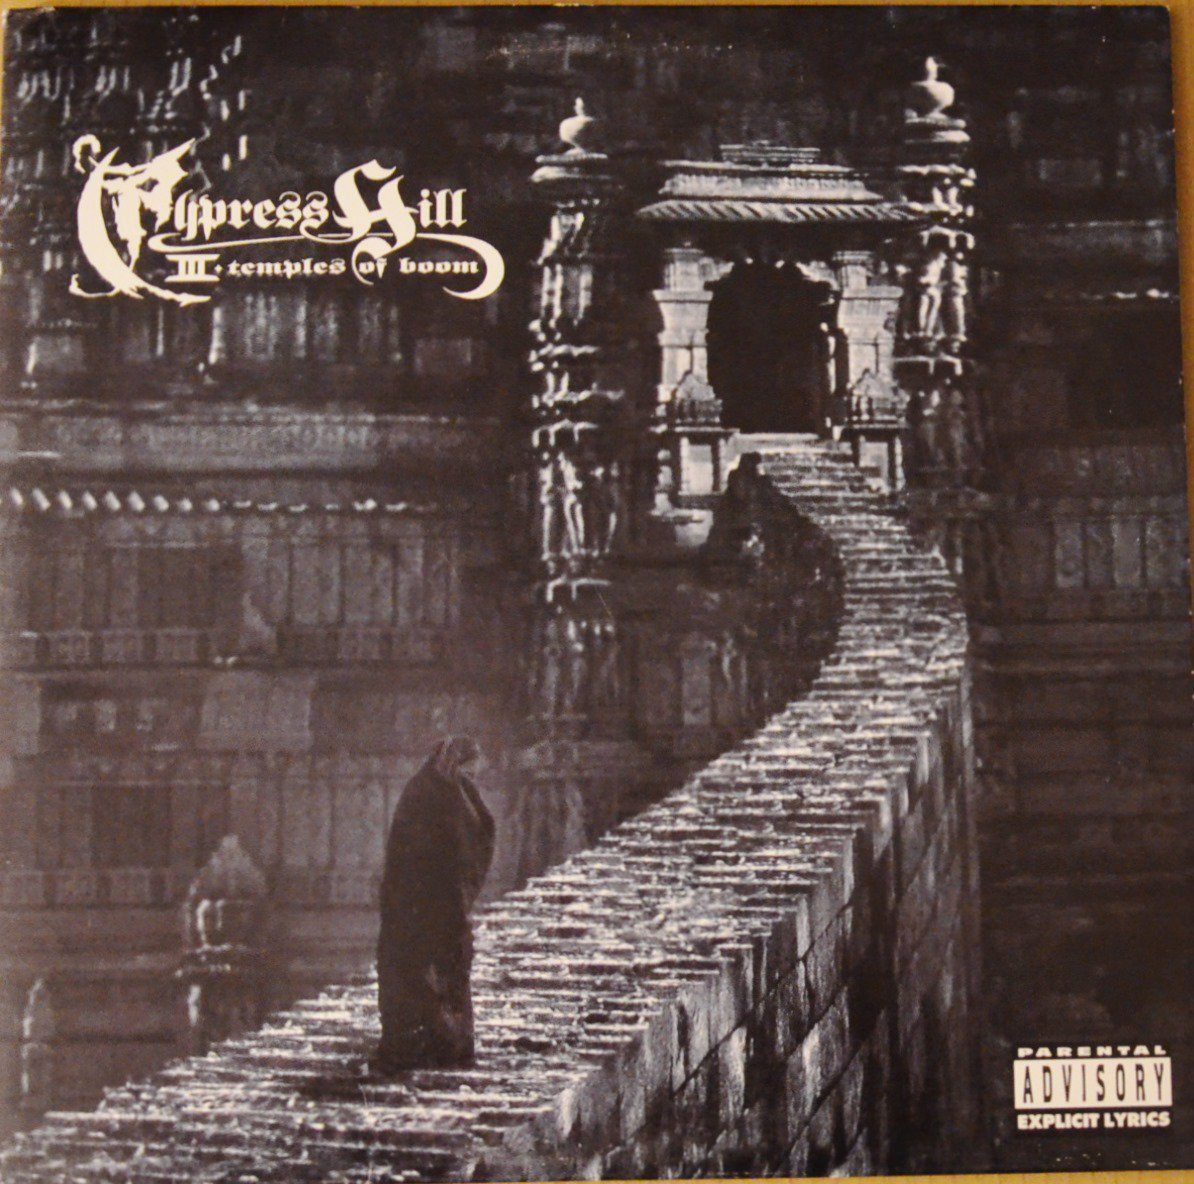 CYPRESS HILL ‎/ III (TEMPLES OF BOOM) (2LP)